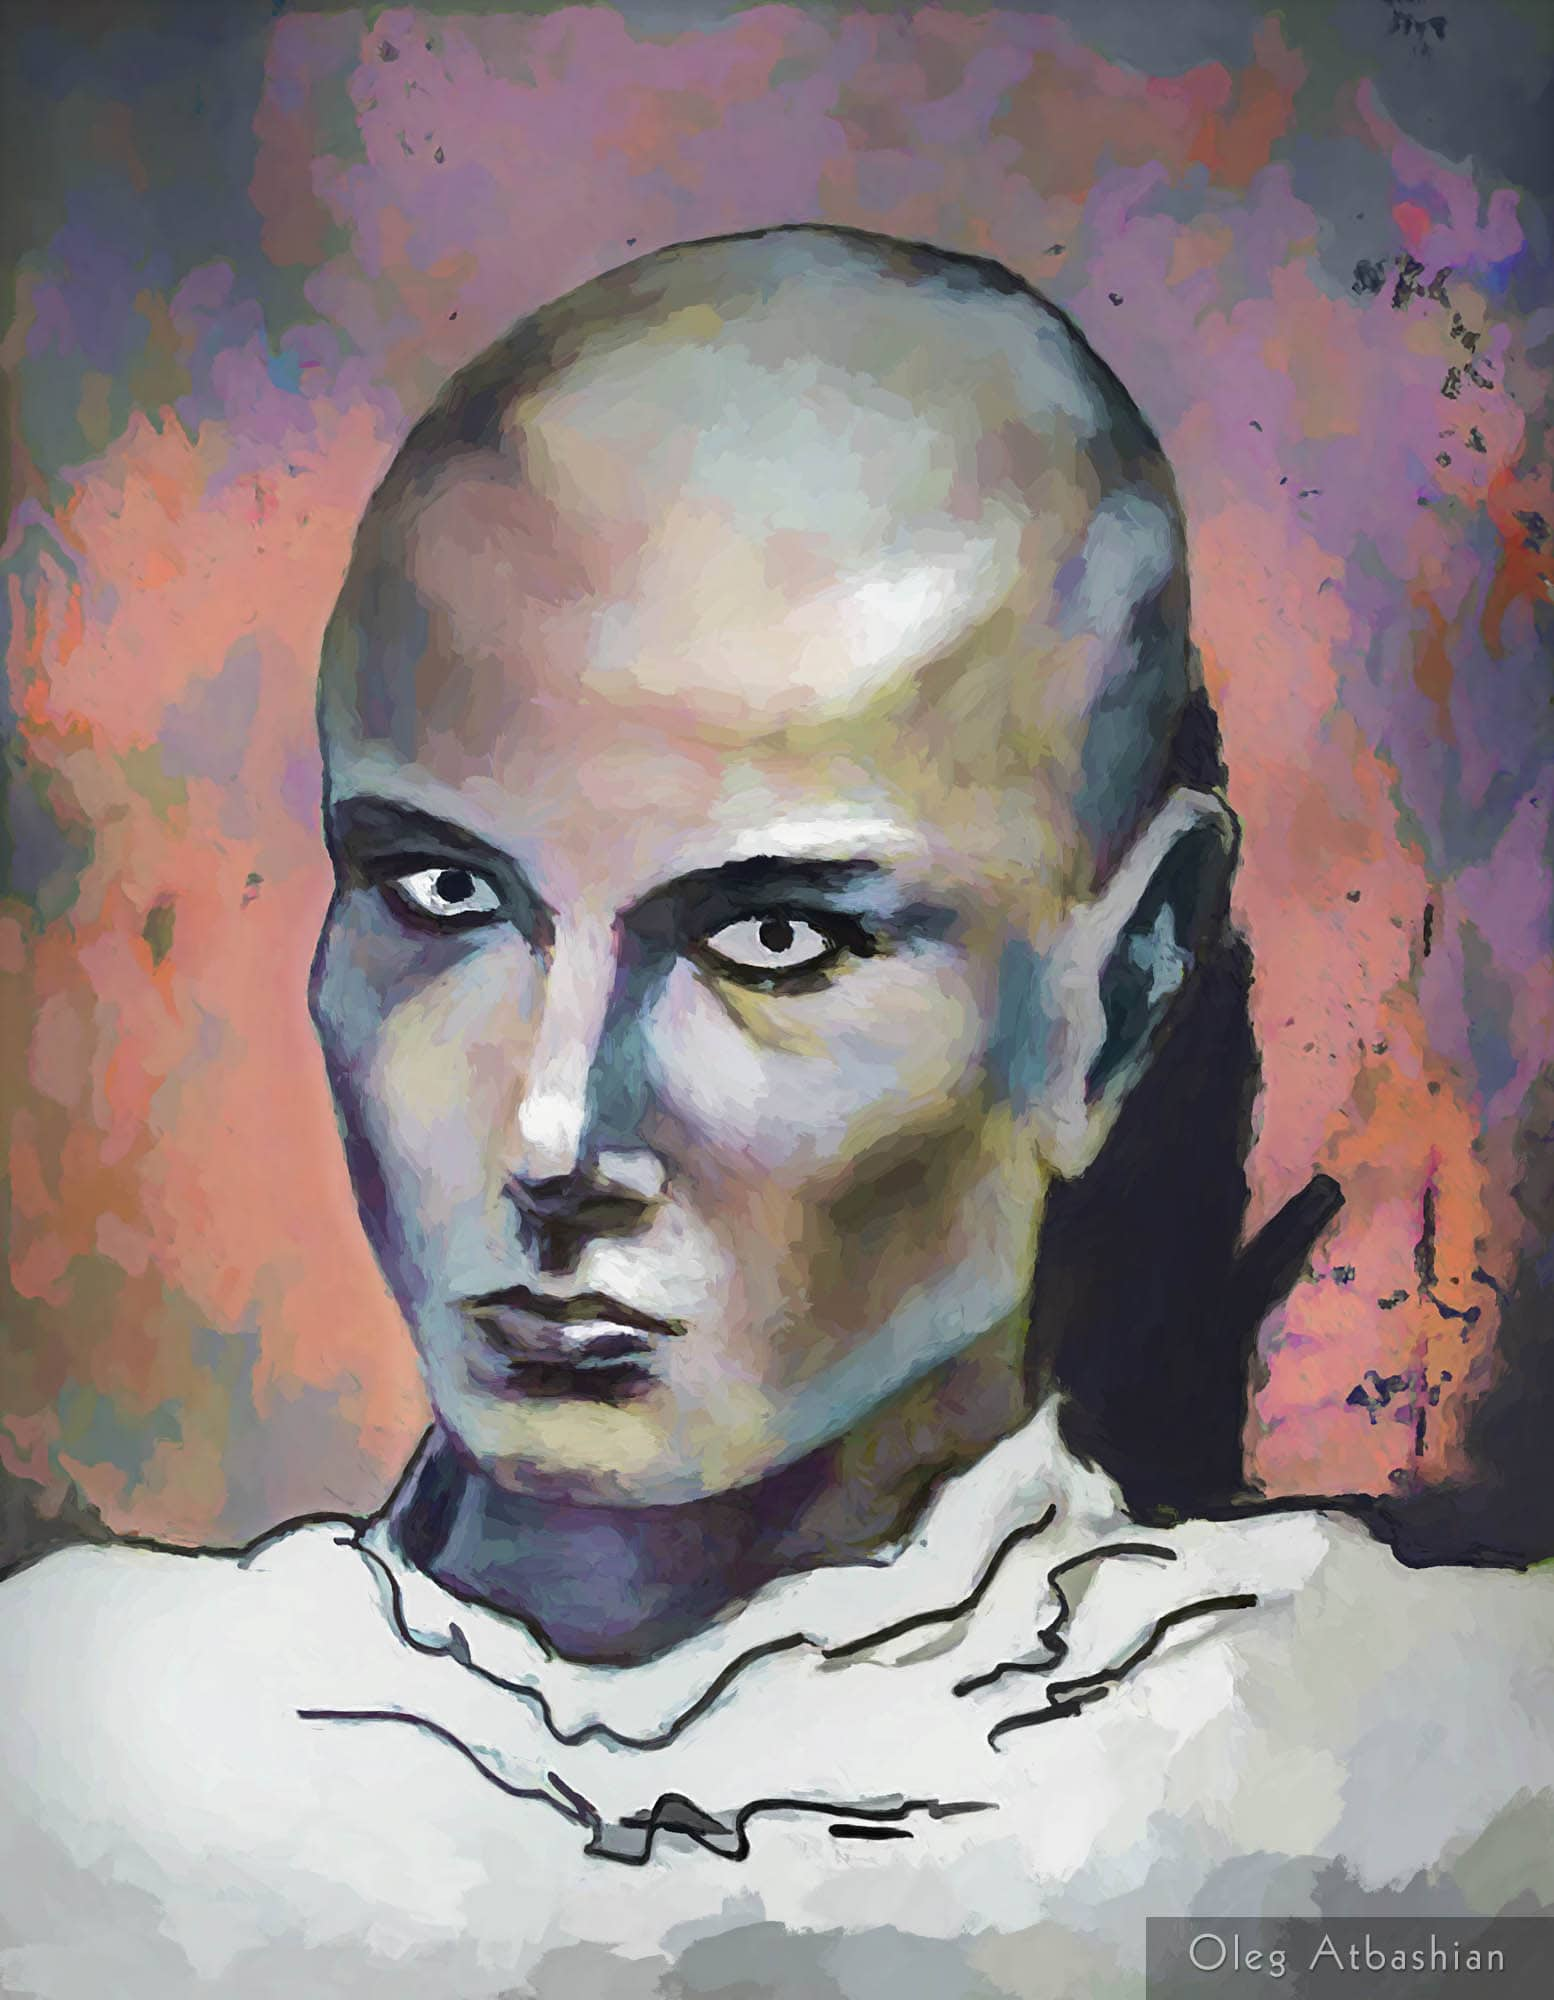 Girl with Shaved Head